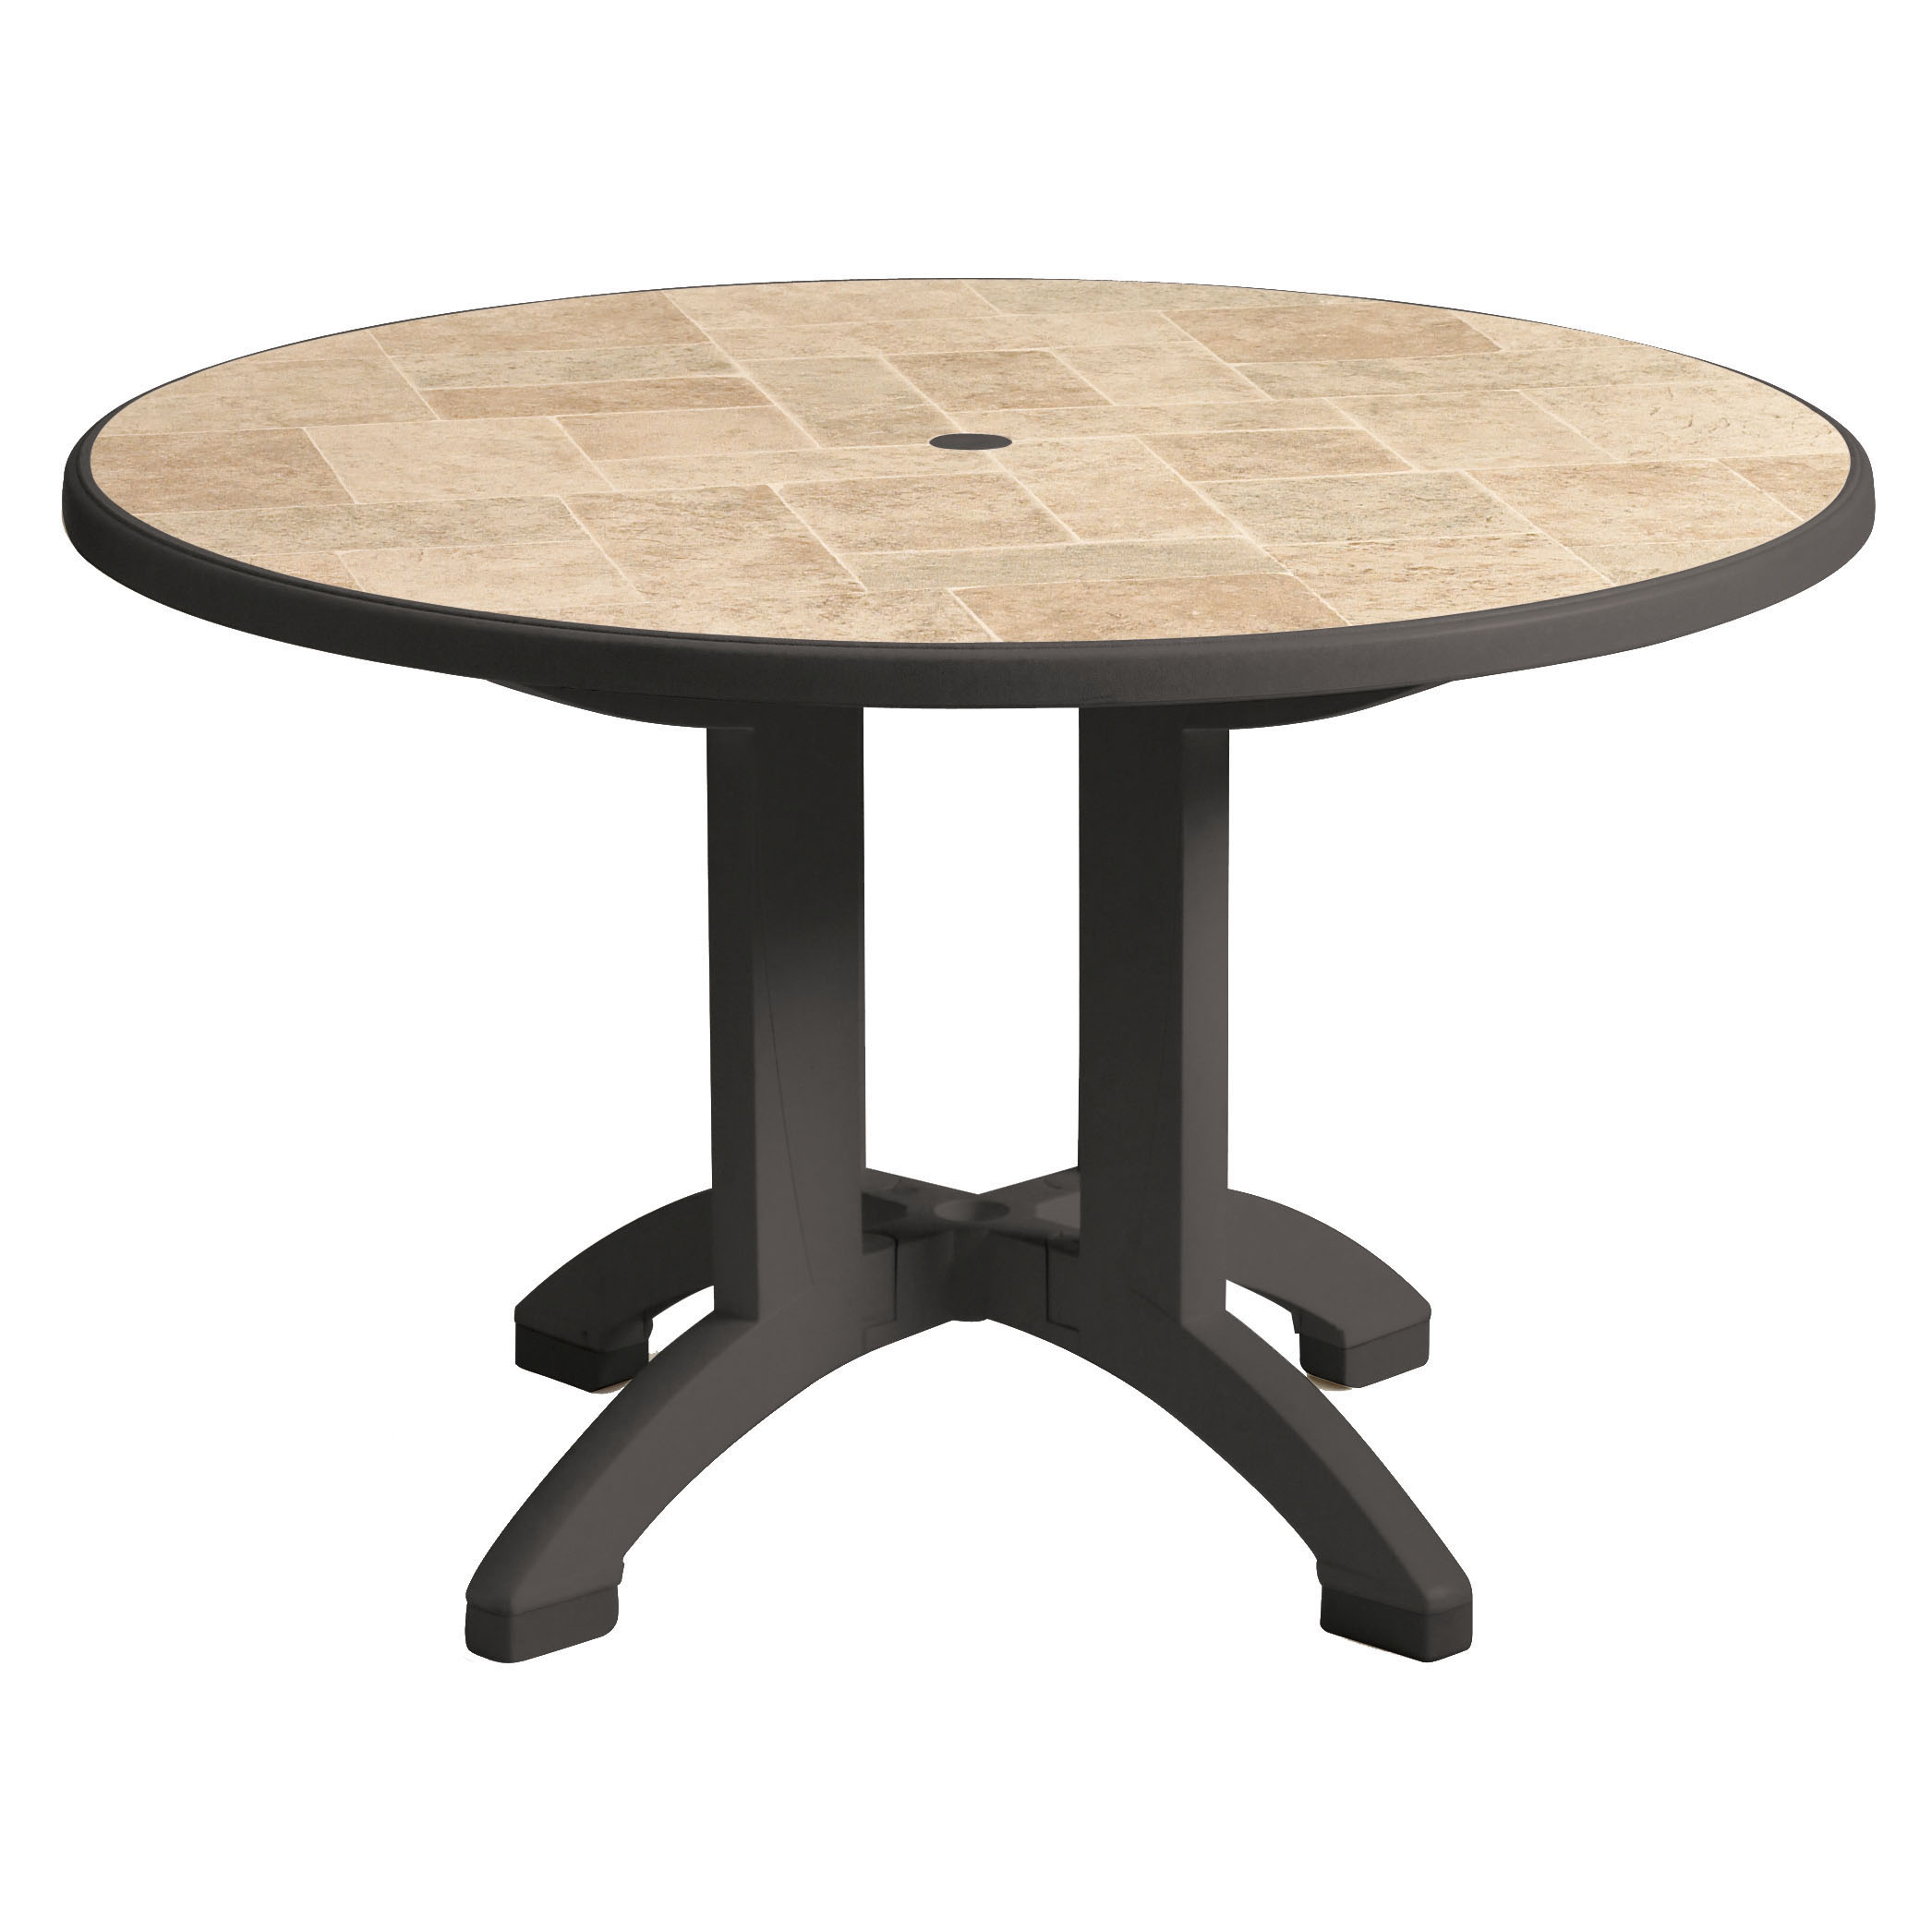 Grosfillex US701102 table, outdoor